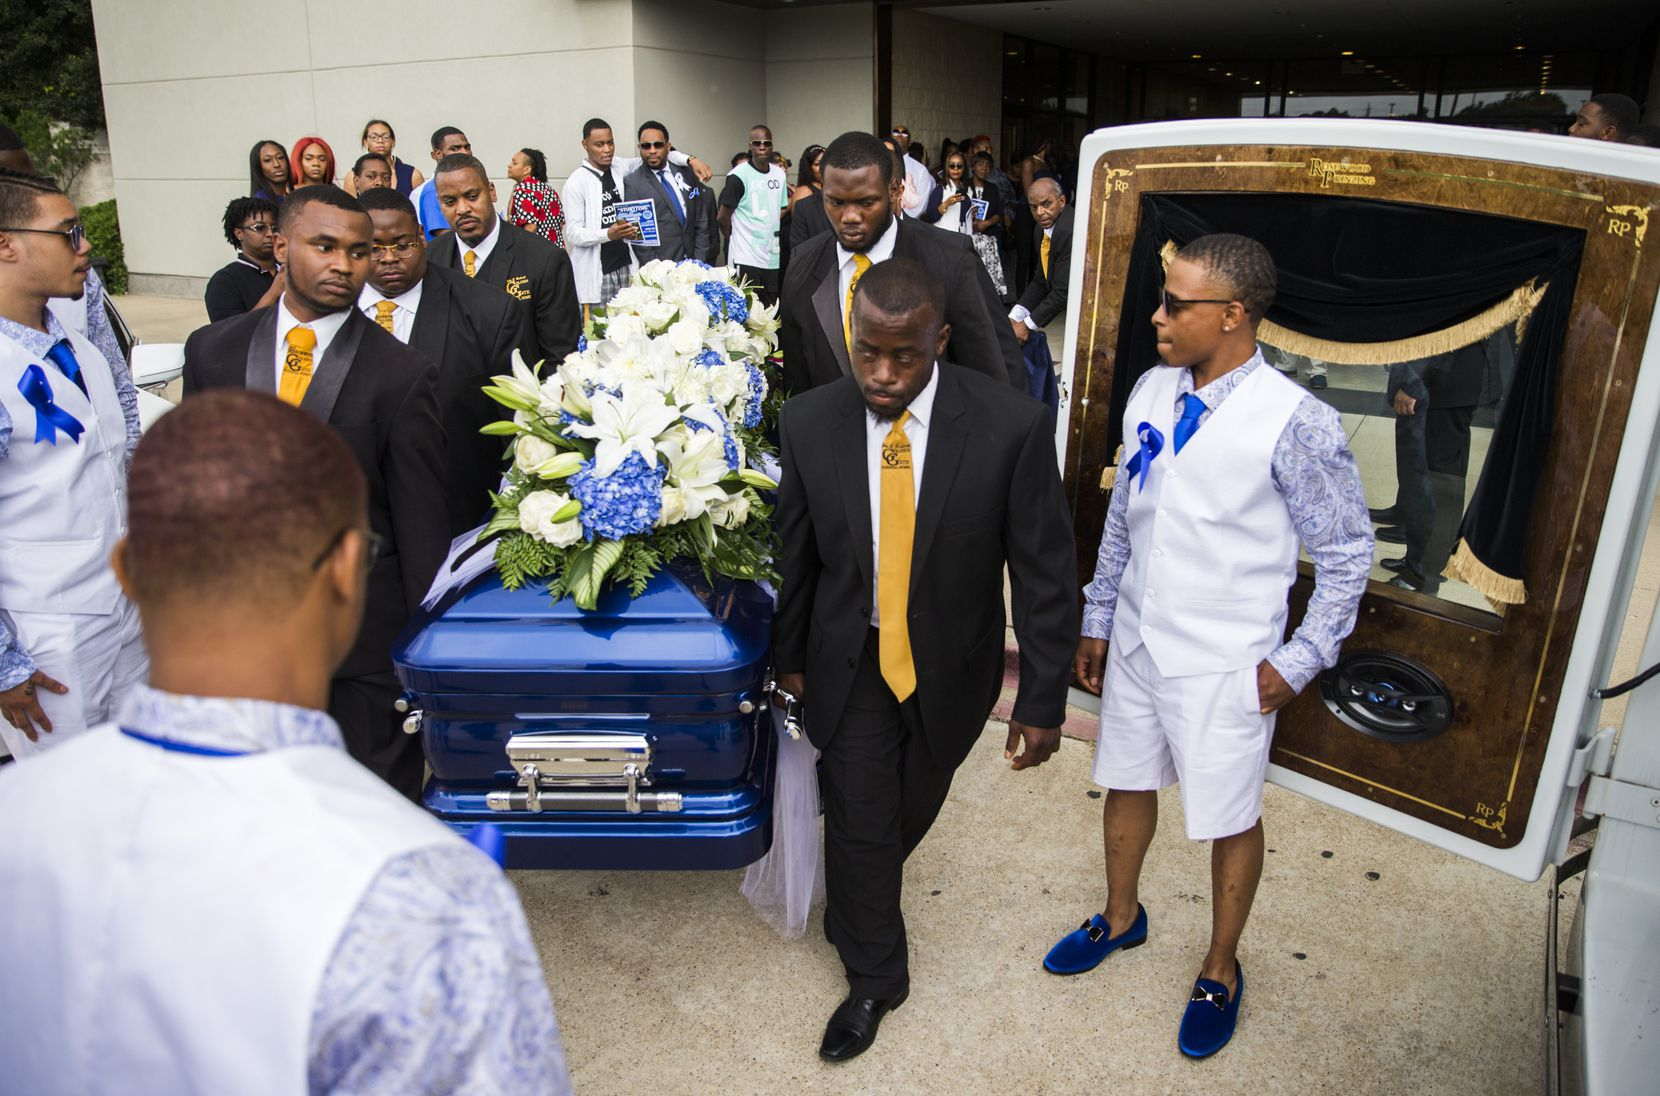 Pallbearers carry the casket of Muhlaysia Booker to a hearse Tuesday after a memorial service attended by hundreds of mourners.